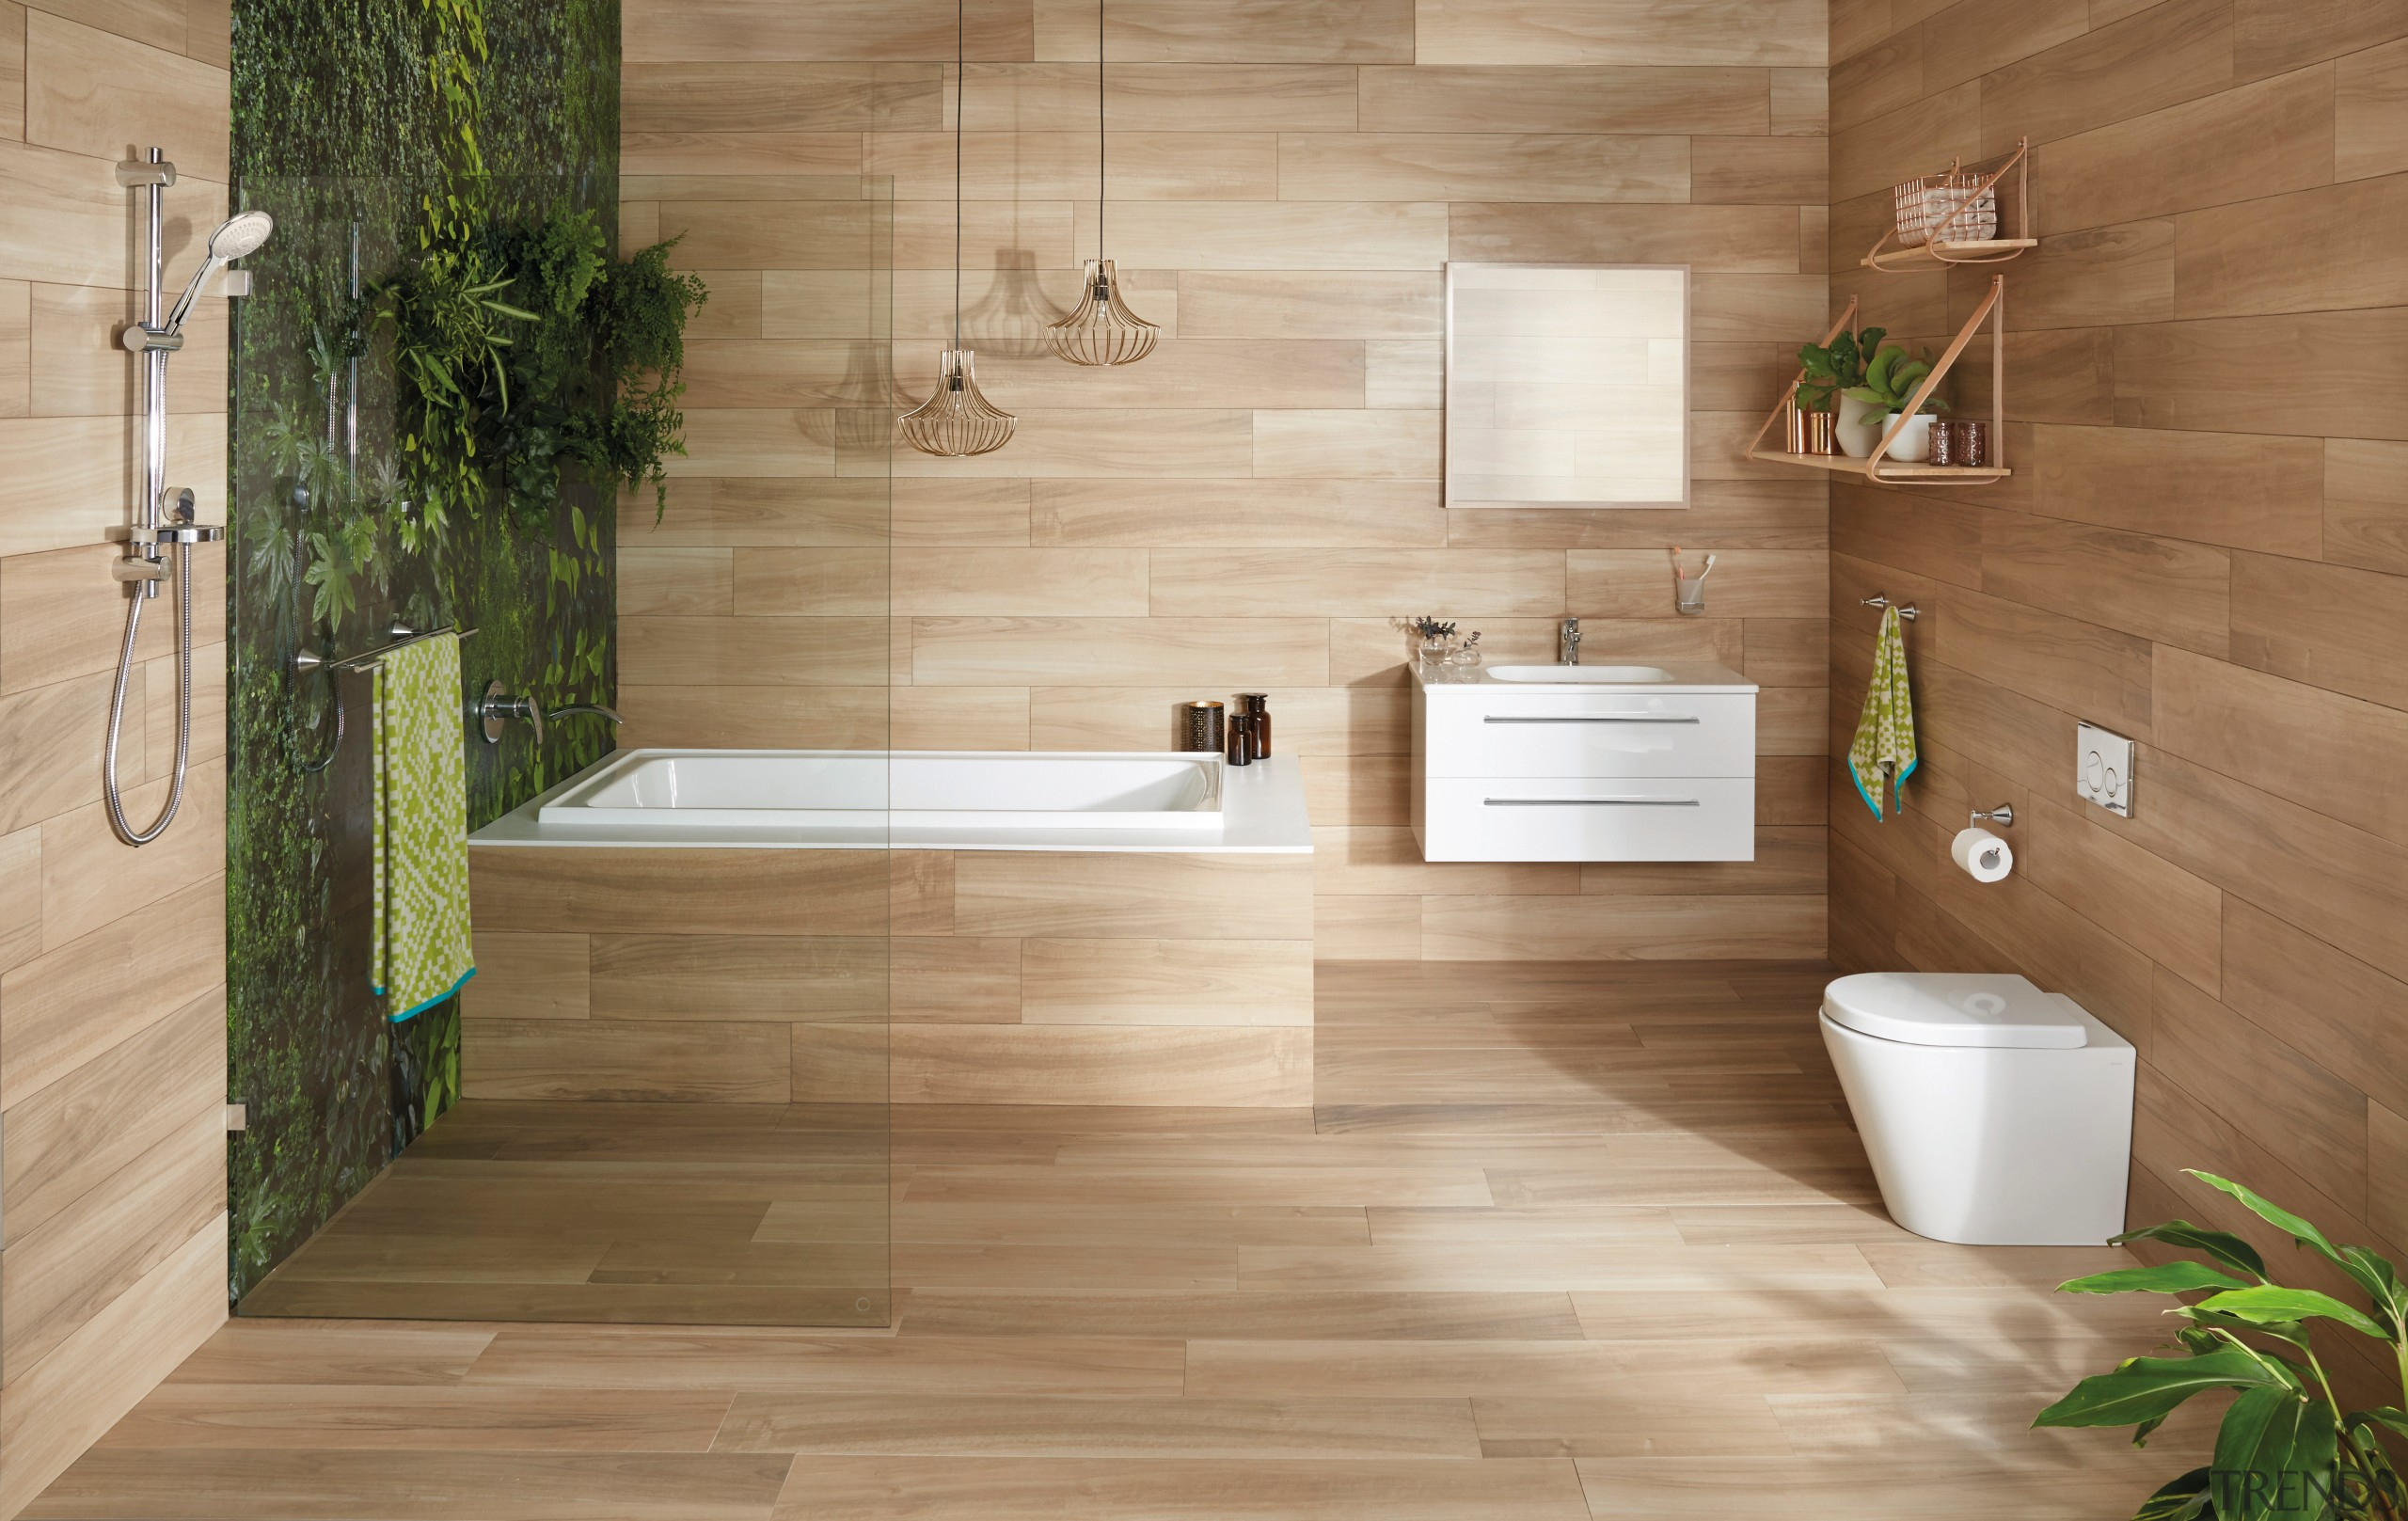 Wood is an increasingly popular look in todays bathroom, floor, flooring, hardwood, interior design, laminate flooring, tile, wall, wood, wood flooring, brown, orange